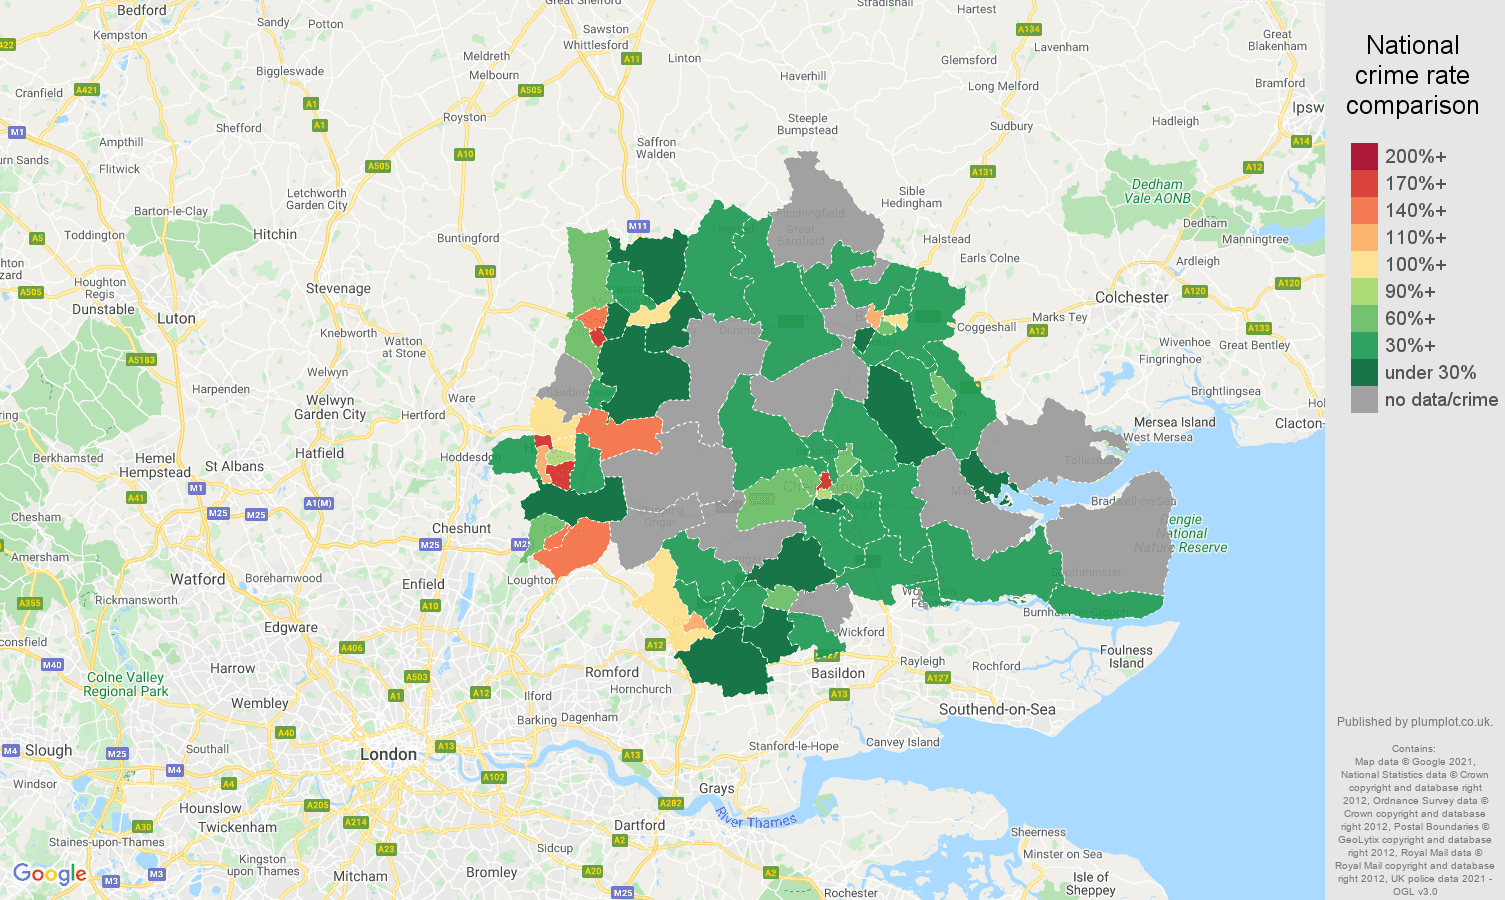 Chelmsford robbery crime rate comparison map